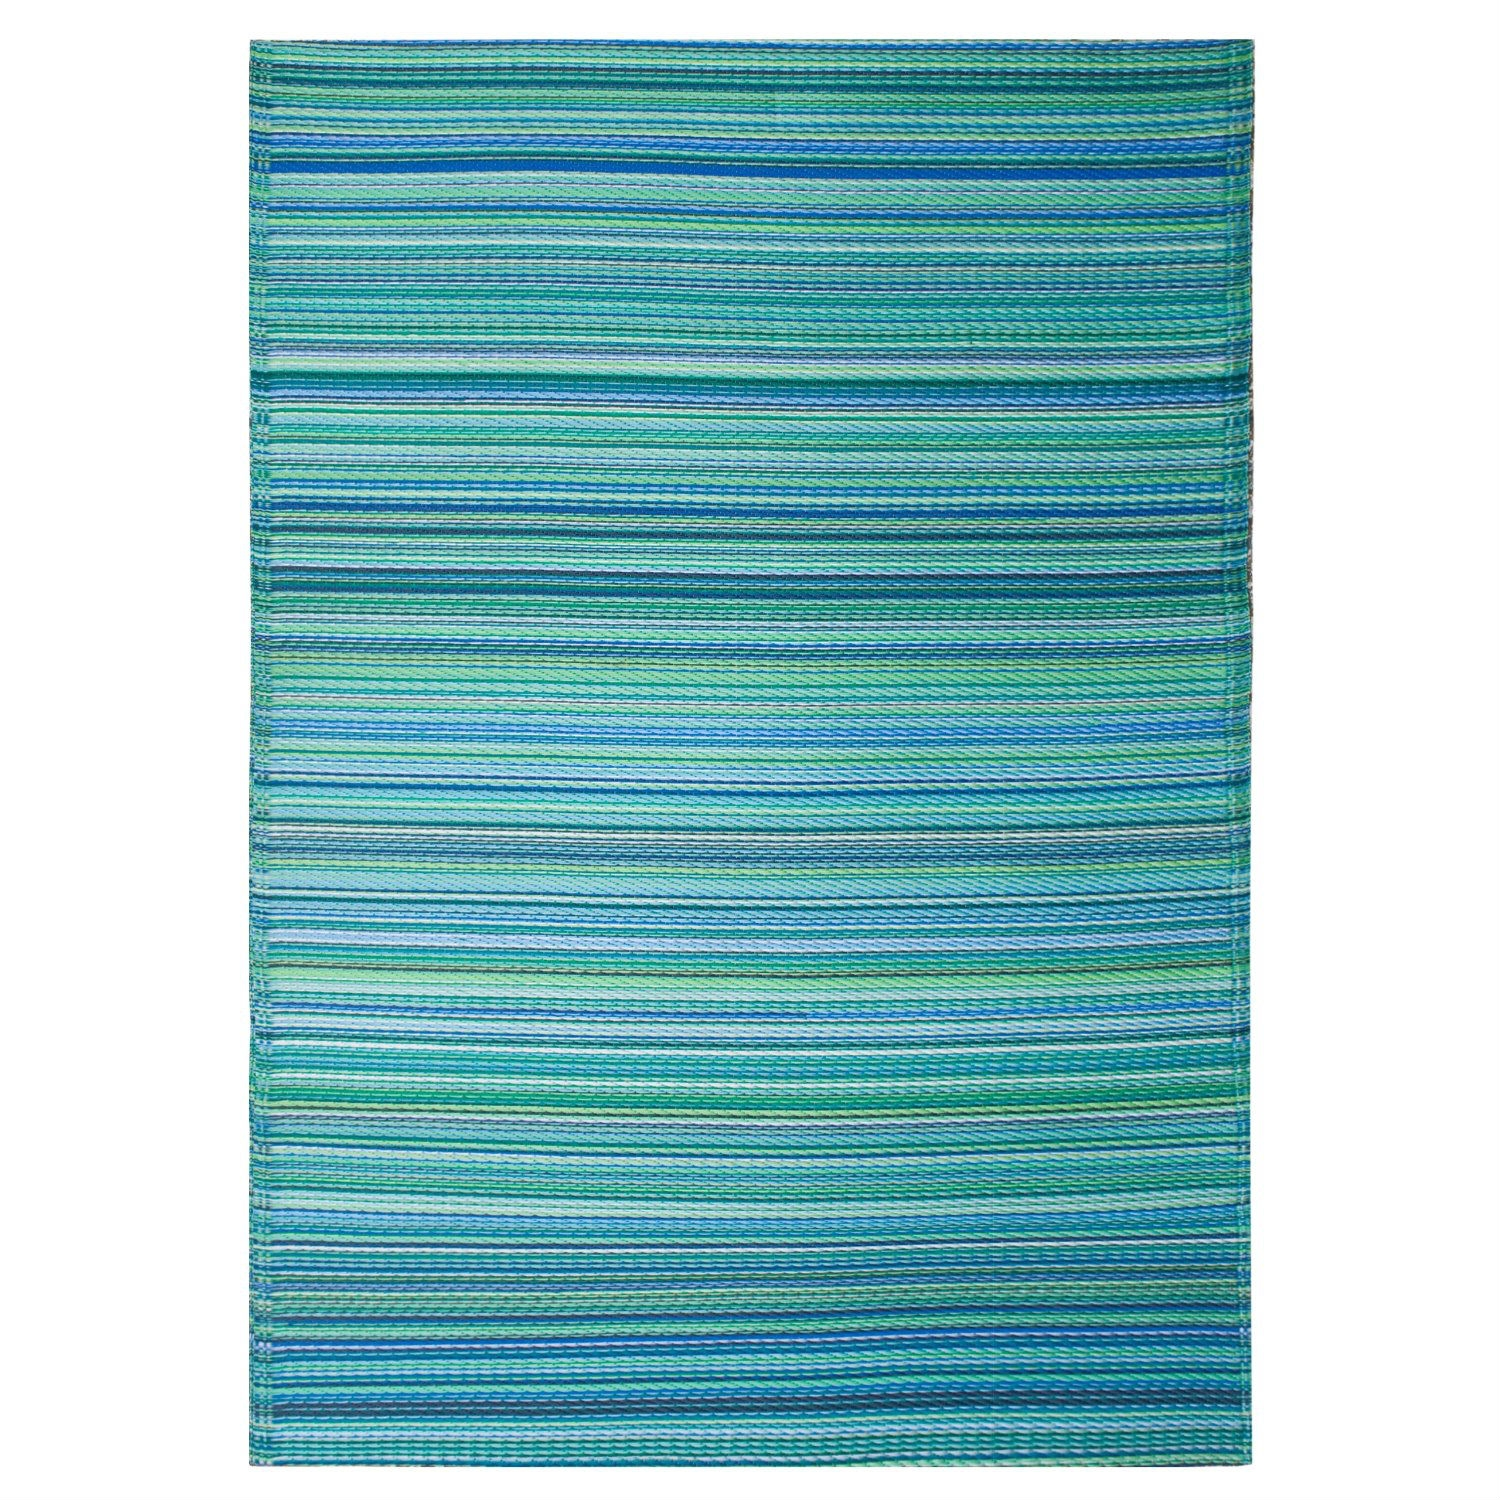 4' x 6' Indoor / Outdoor Area Rug with Turquoise Blue Green Stripes, FCIOR4801 :  The classic striped pattern of this 4' x 6' Indoor / Outdoor Area Rug with Turquoise Blue Green Stripes makes it easy to incorporate into any room, while the array of vibrant hues makes it a best seller. The multicolored straws are carefully blended together to create a unique pattern every time. These beautifully crafted rugs are made following the fair trade principles. They are made using premium quality recycled plastic straws which are tightly woven together to offer strength, softness and beauty. Being plastic, moisture will have no effect on the mat and it will not attract mildew. Reversible: change the look of your decor, Suitable for indoor and outdoor uses; Lightweight: comes with jute bag; Actual colors may vary from the image(s) shown due to manufacturing limitations; Made From Multicolored Straws: Made of plastic tubes of various shades of blue and green.